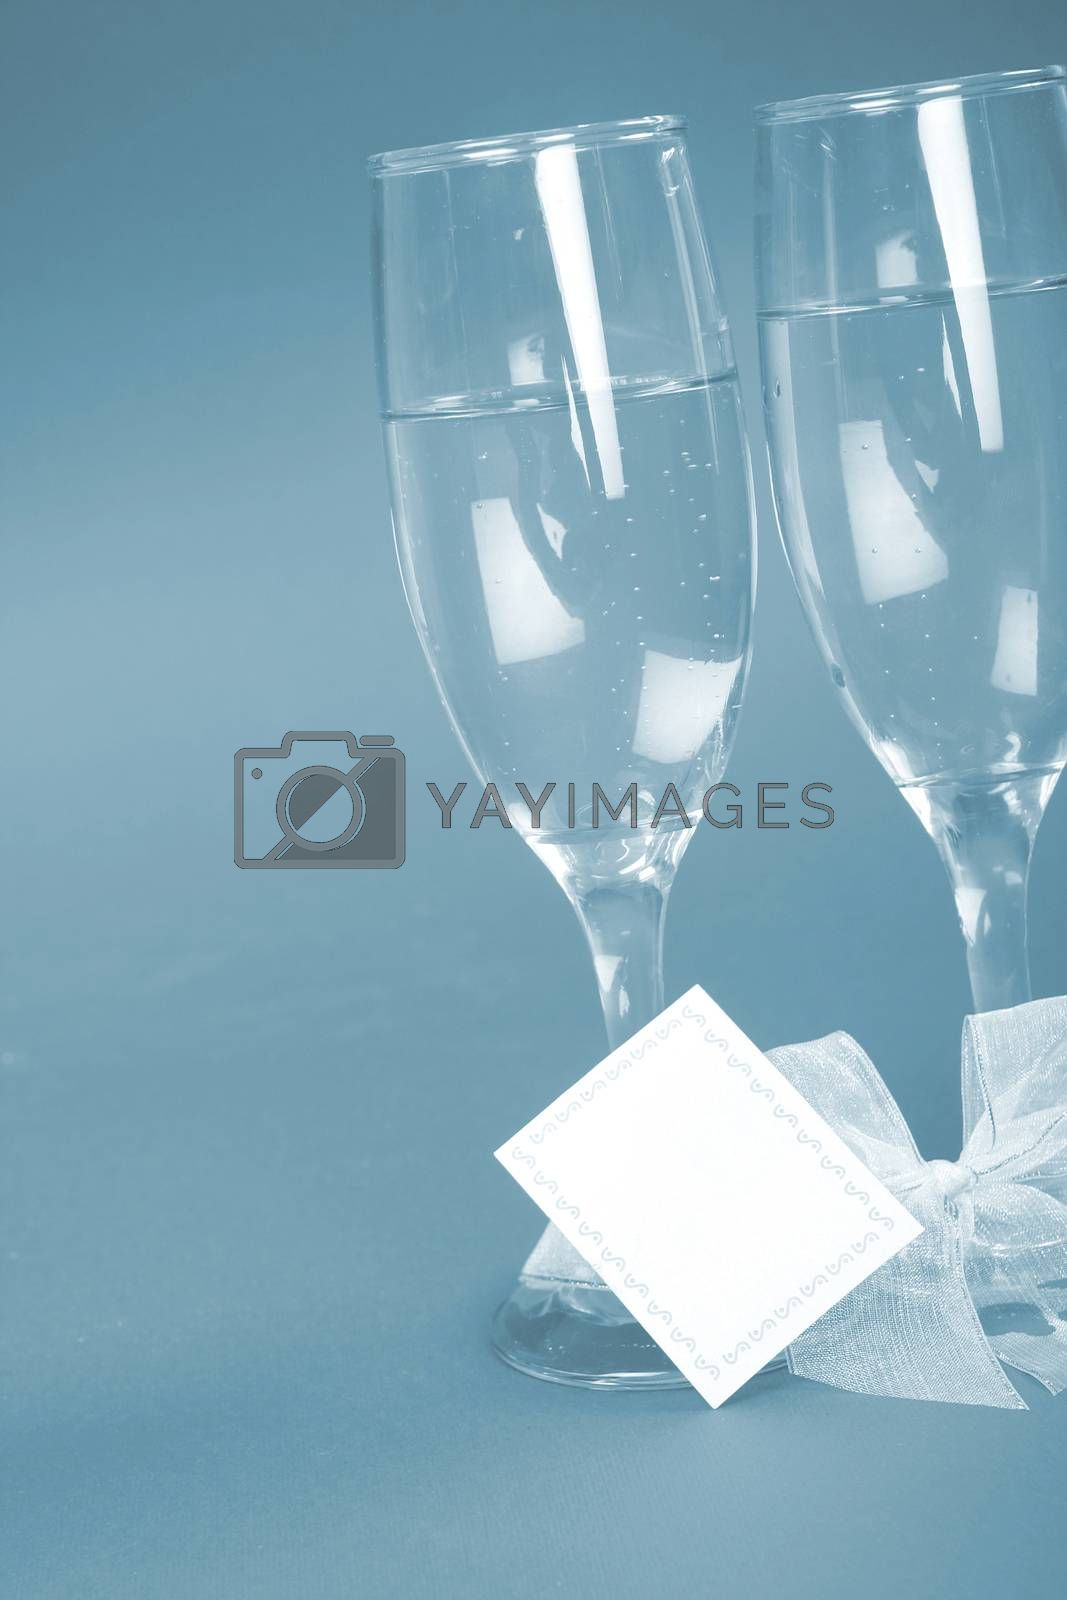 New year party with champagne glasses. Coppy space